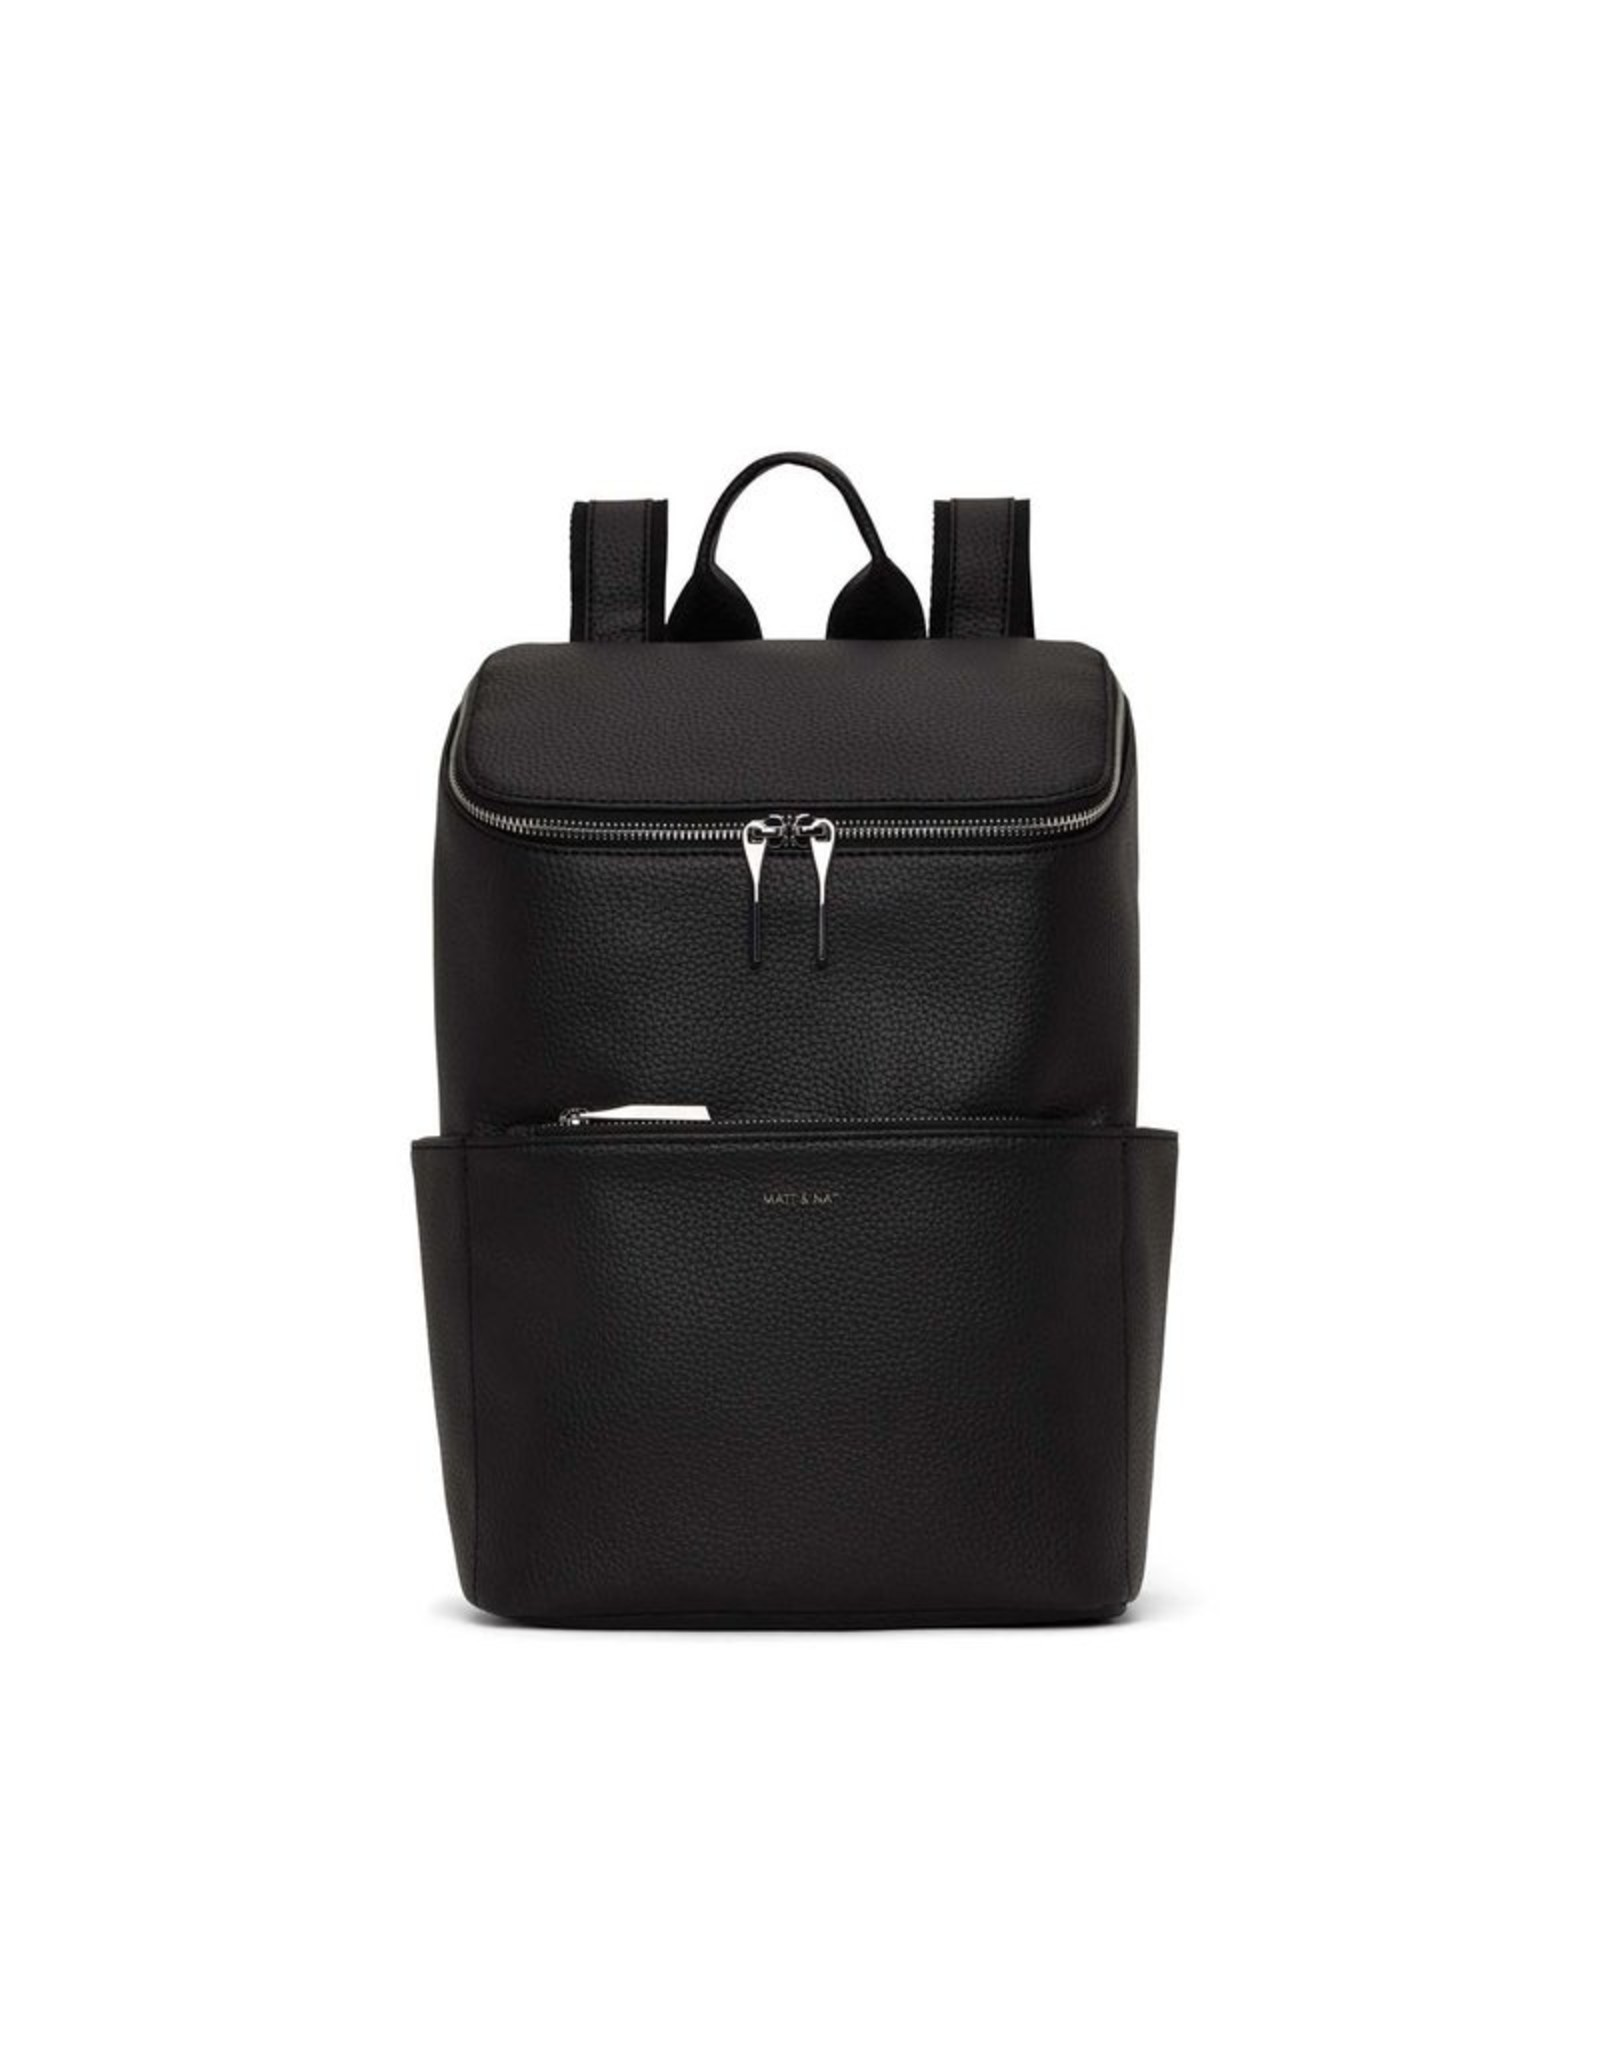 Brave Purity Backpack, Black